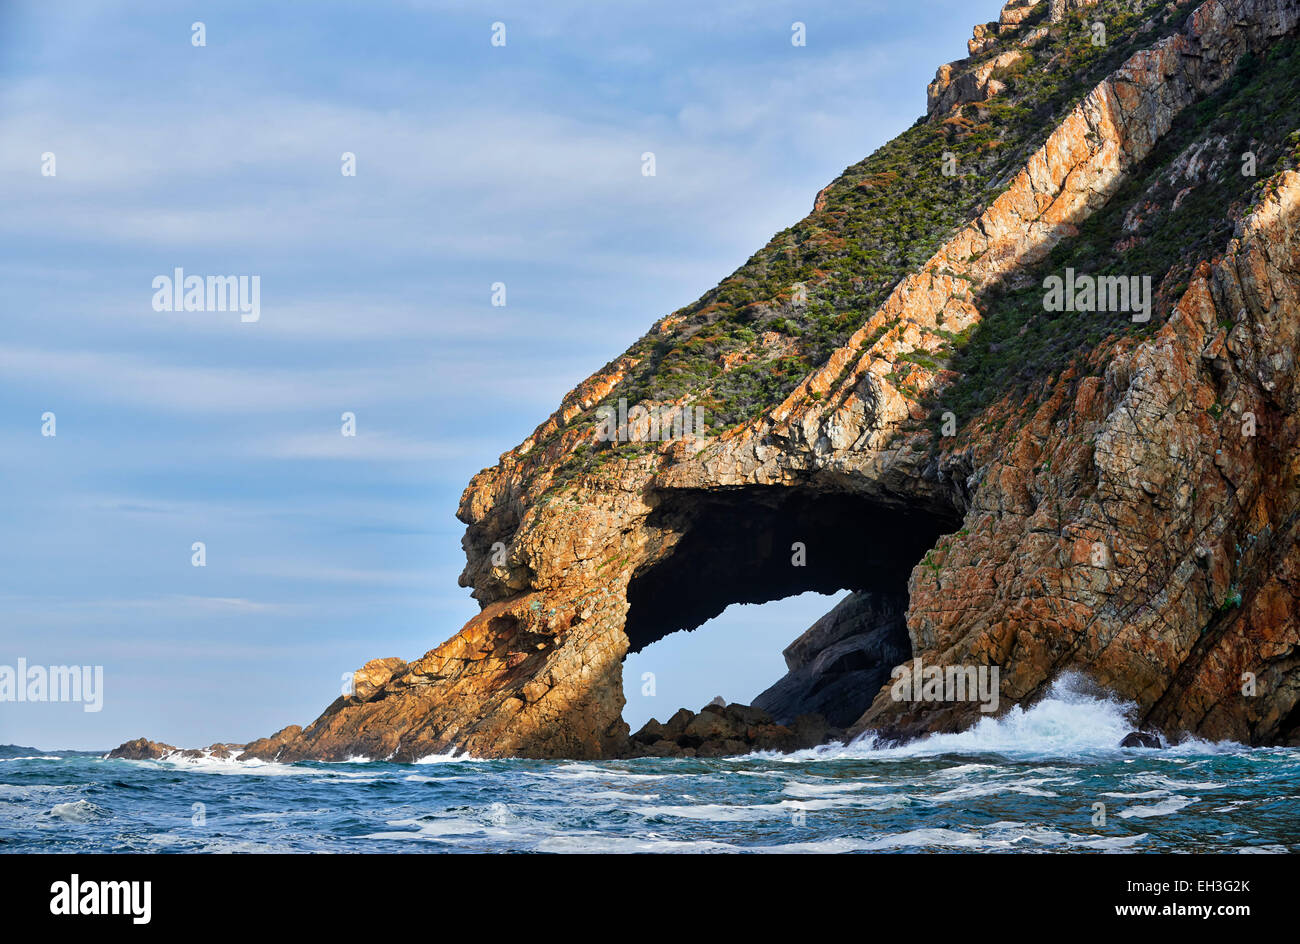 landscape from seaside with cliffs and cave at coastline, Western Cape, South Africa - Stock Image